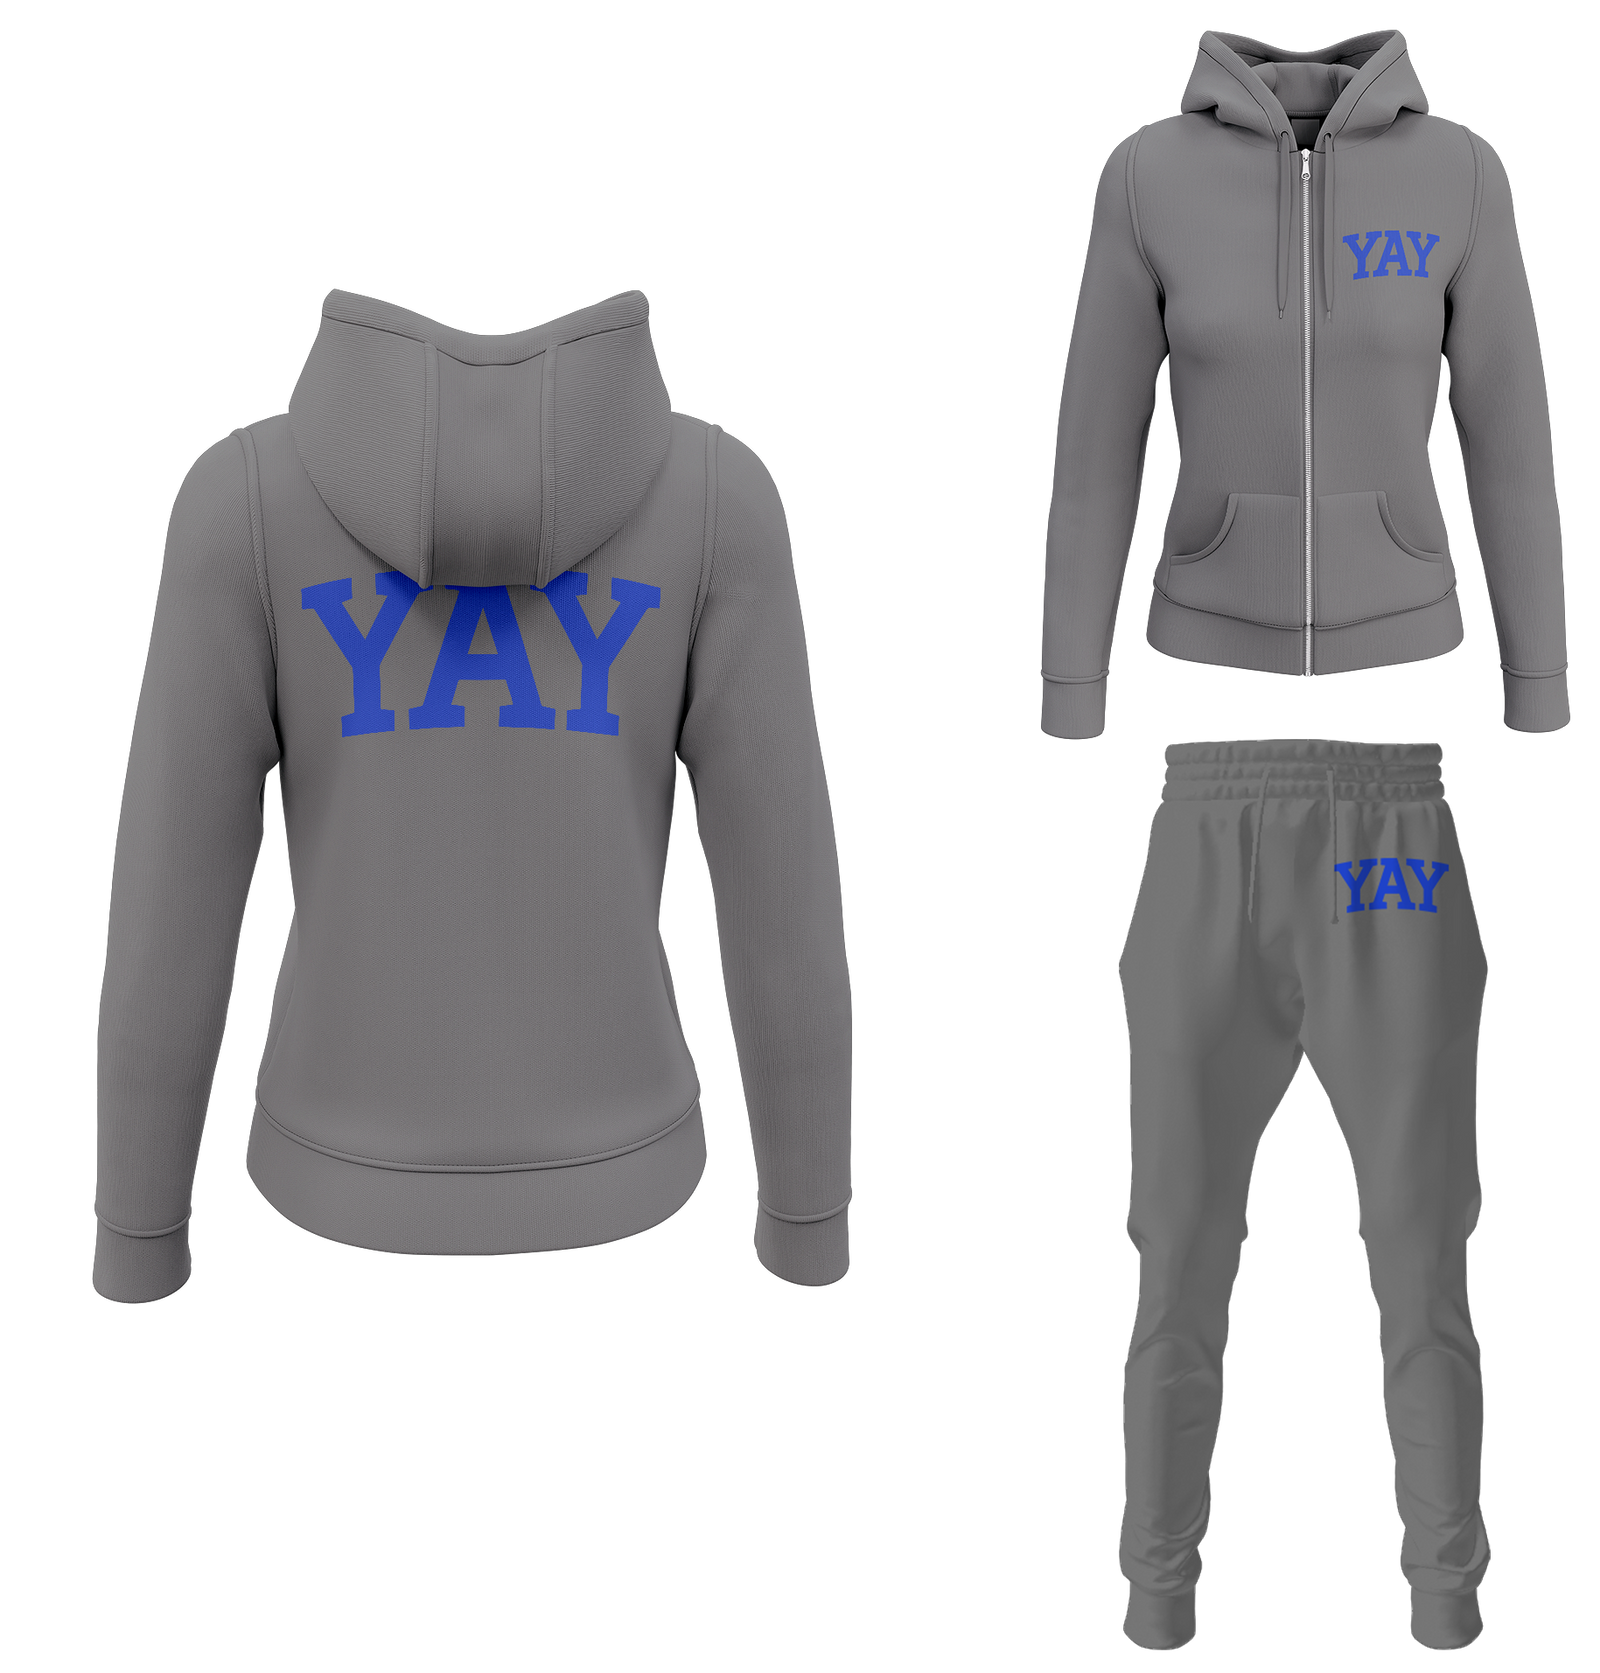 Gray Womens Yay Block Zipped Sweatsuits